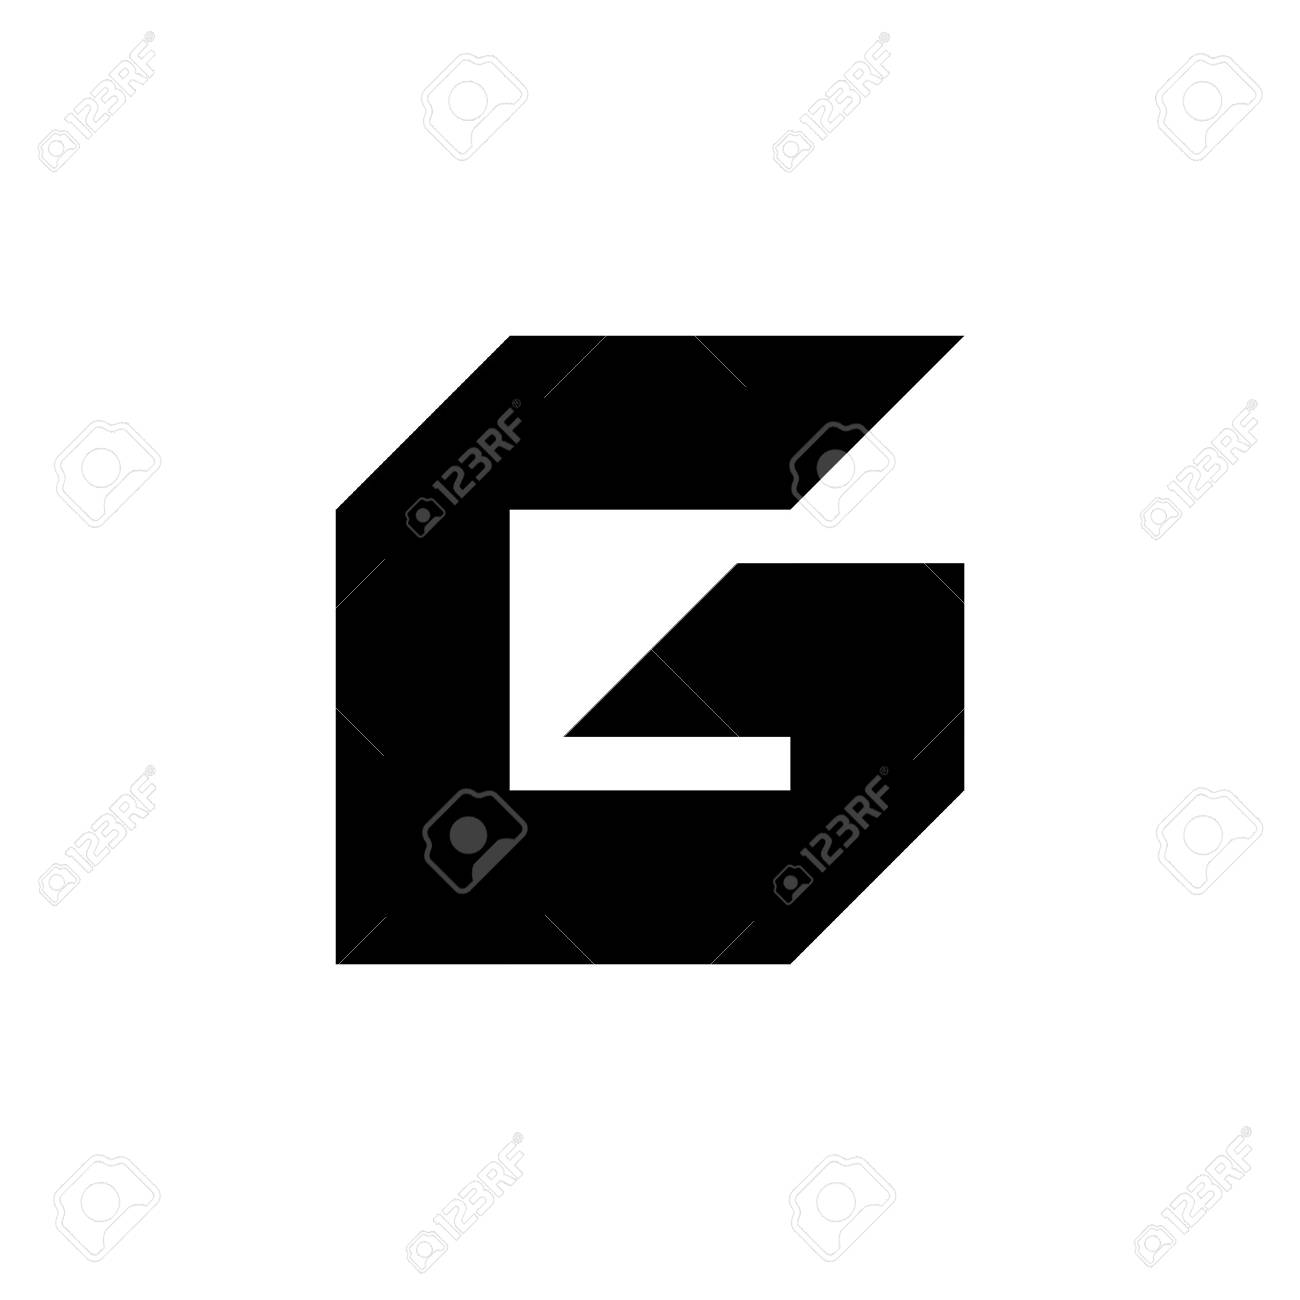 letter template icon  Stock Photo